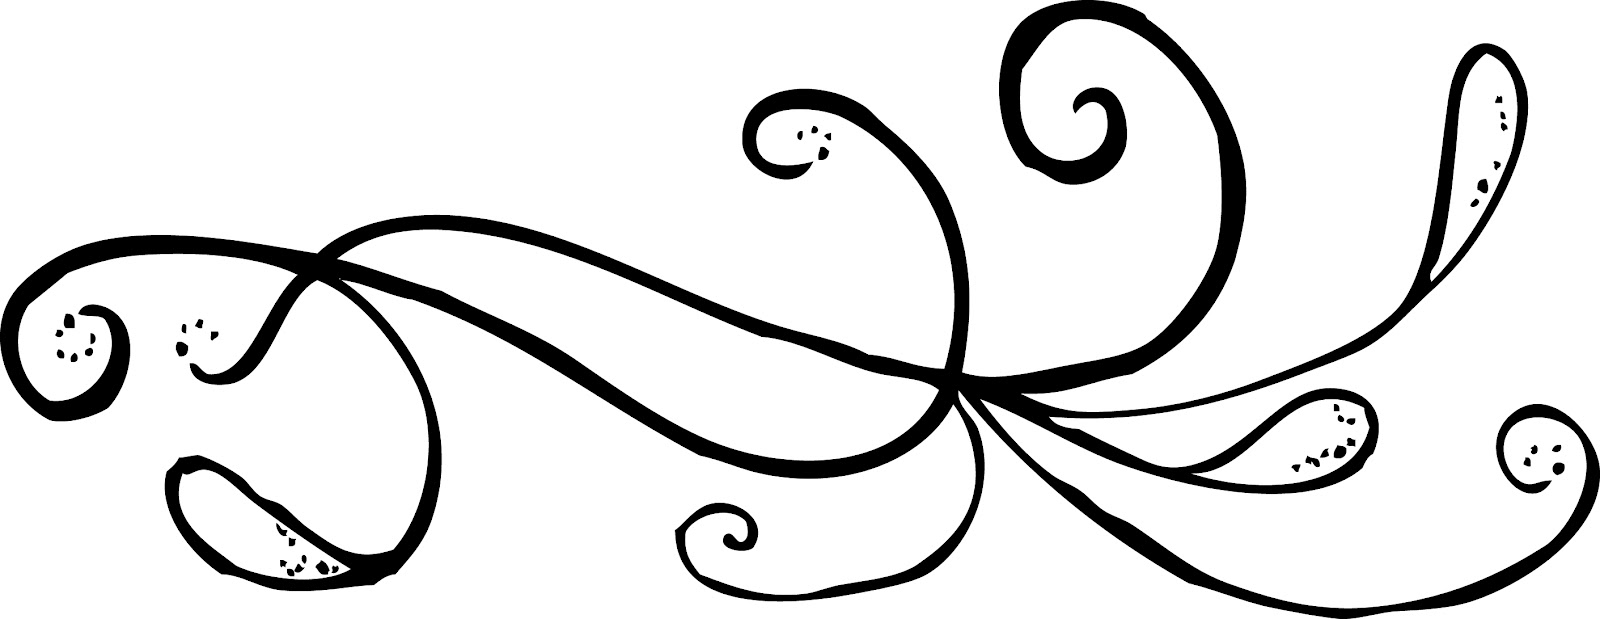 Swirl Line Design Clipart : Swirly lines clipart suggest